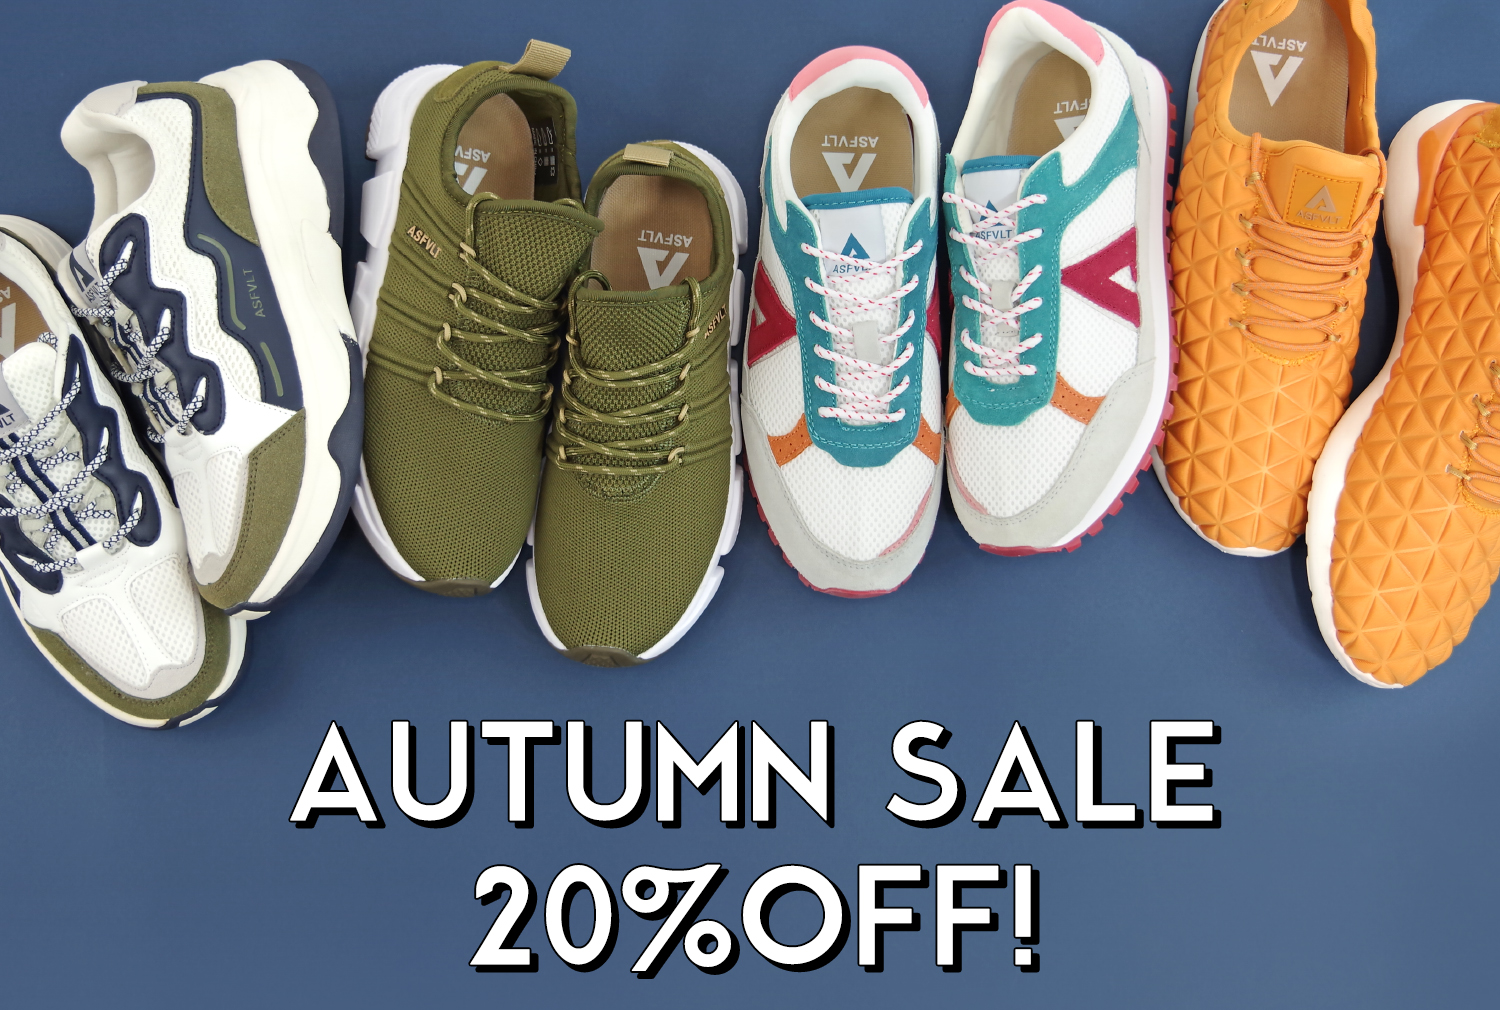 AUTUMN SALE 20%OFF!